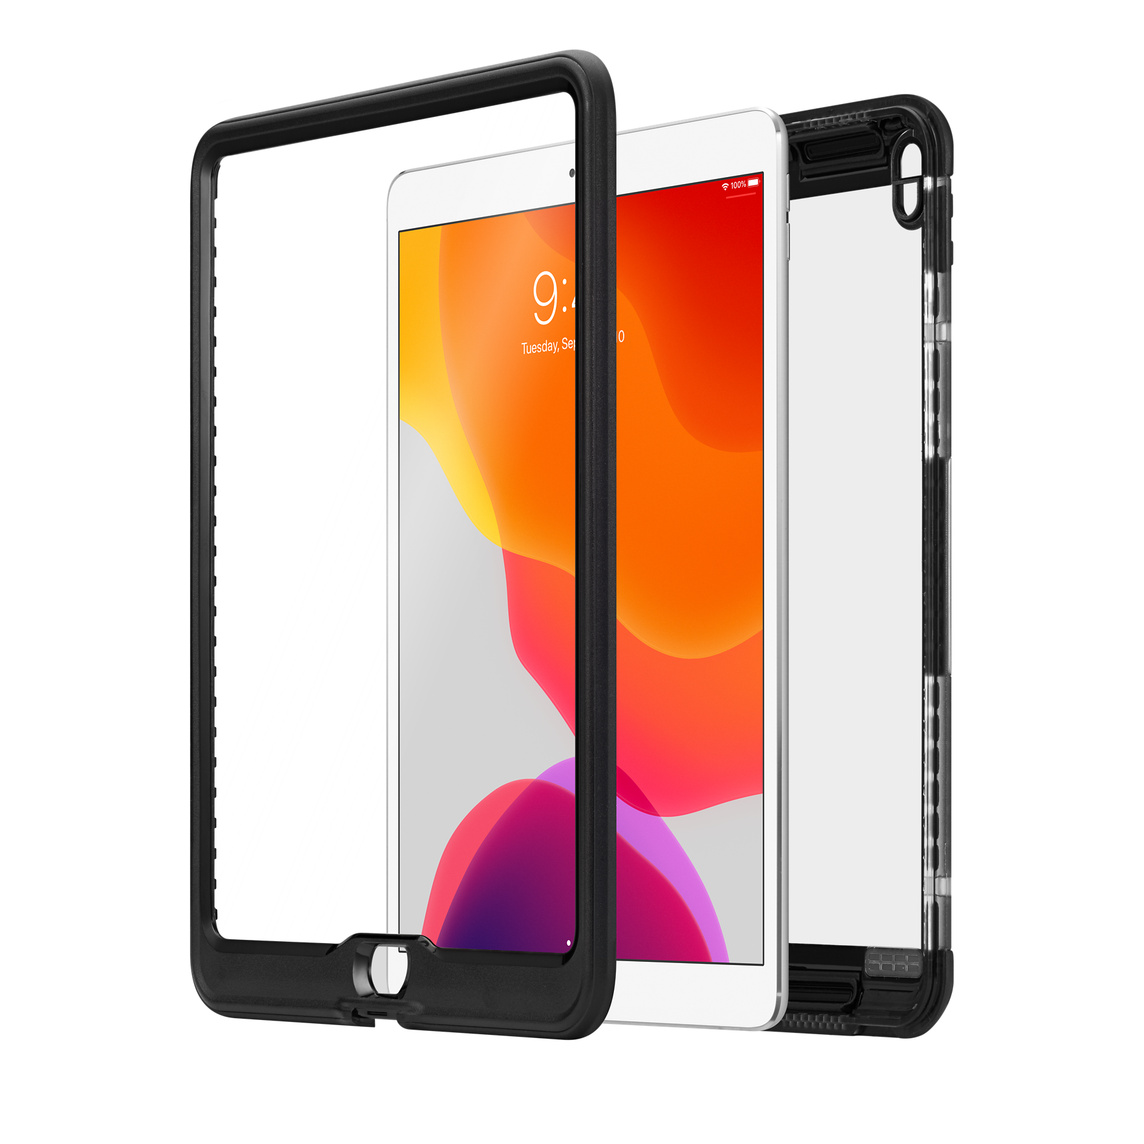 timeless design 0979d 48c9a LifeProof nüüd Case for 10.5-inch iPad Air and iPad Pro